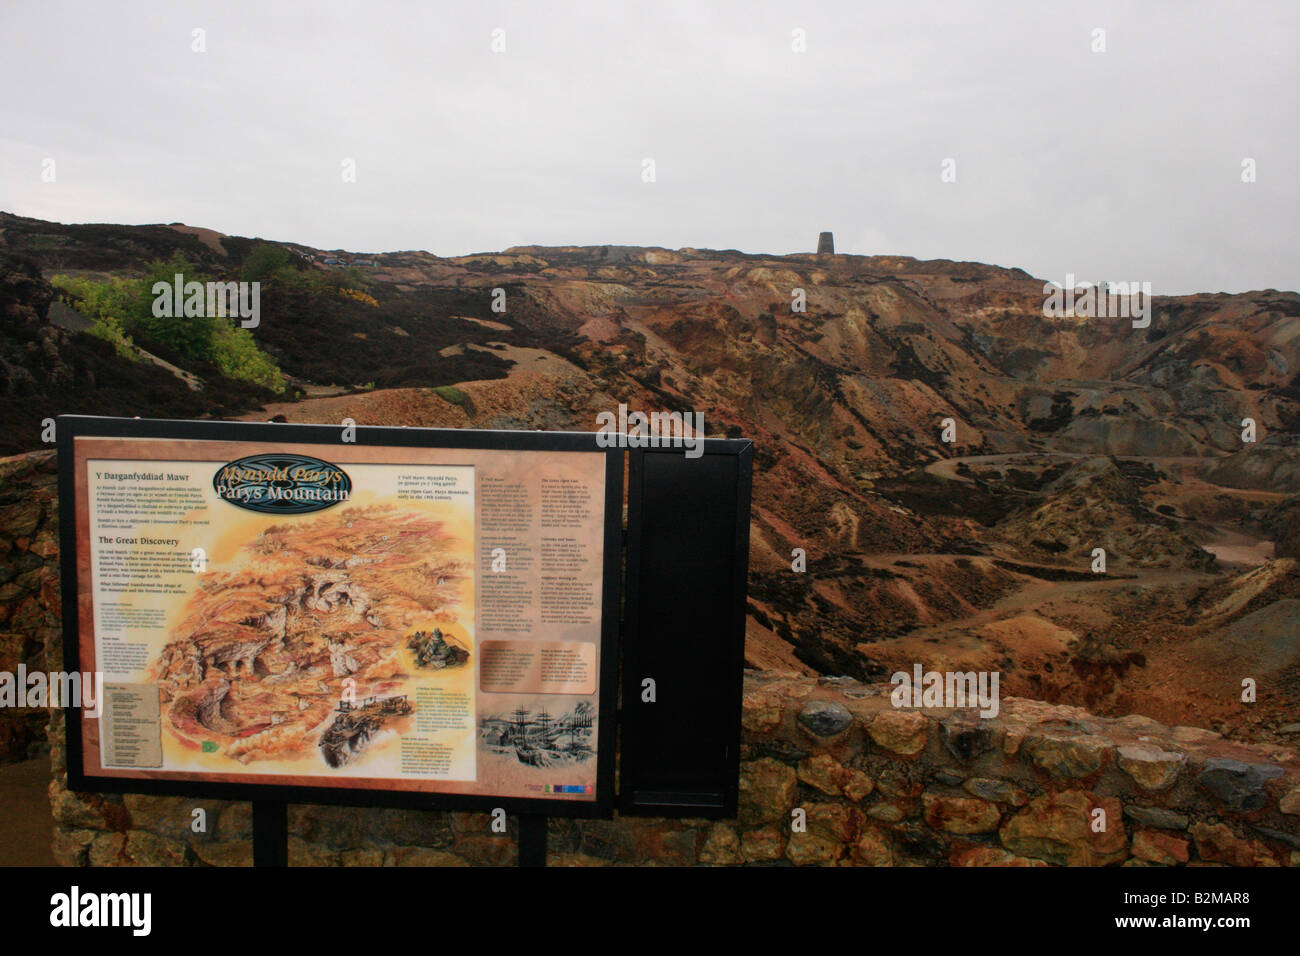 Panel explaining the copper mining history of Parys mountain in Anglesey. - Stock Image